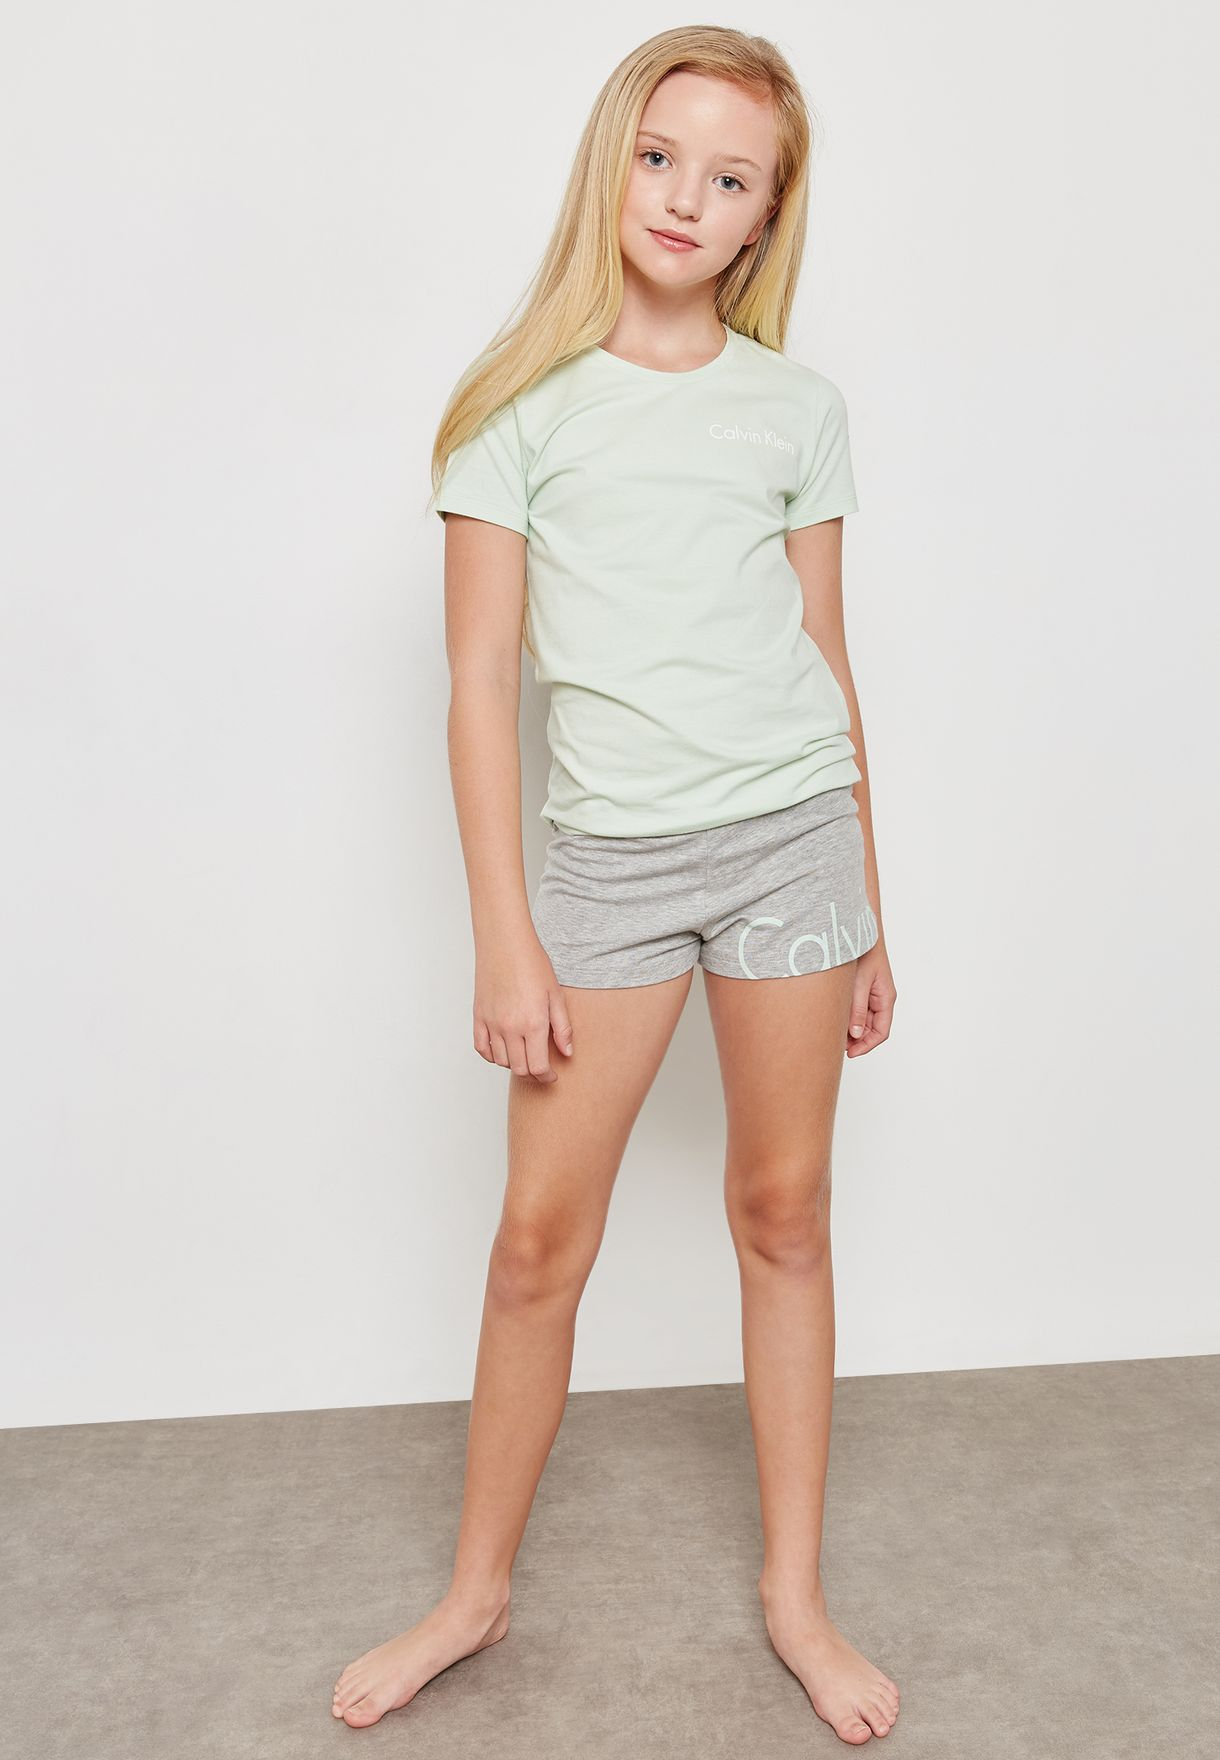 c299e3b6205d9 Shop Calvin Klein green Teen T-Shirt + Shorts Set G80G800172 for ...